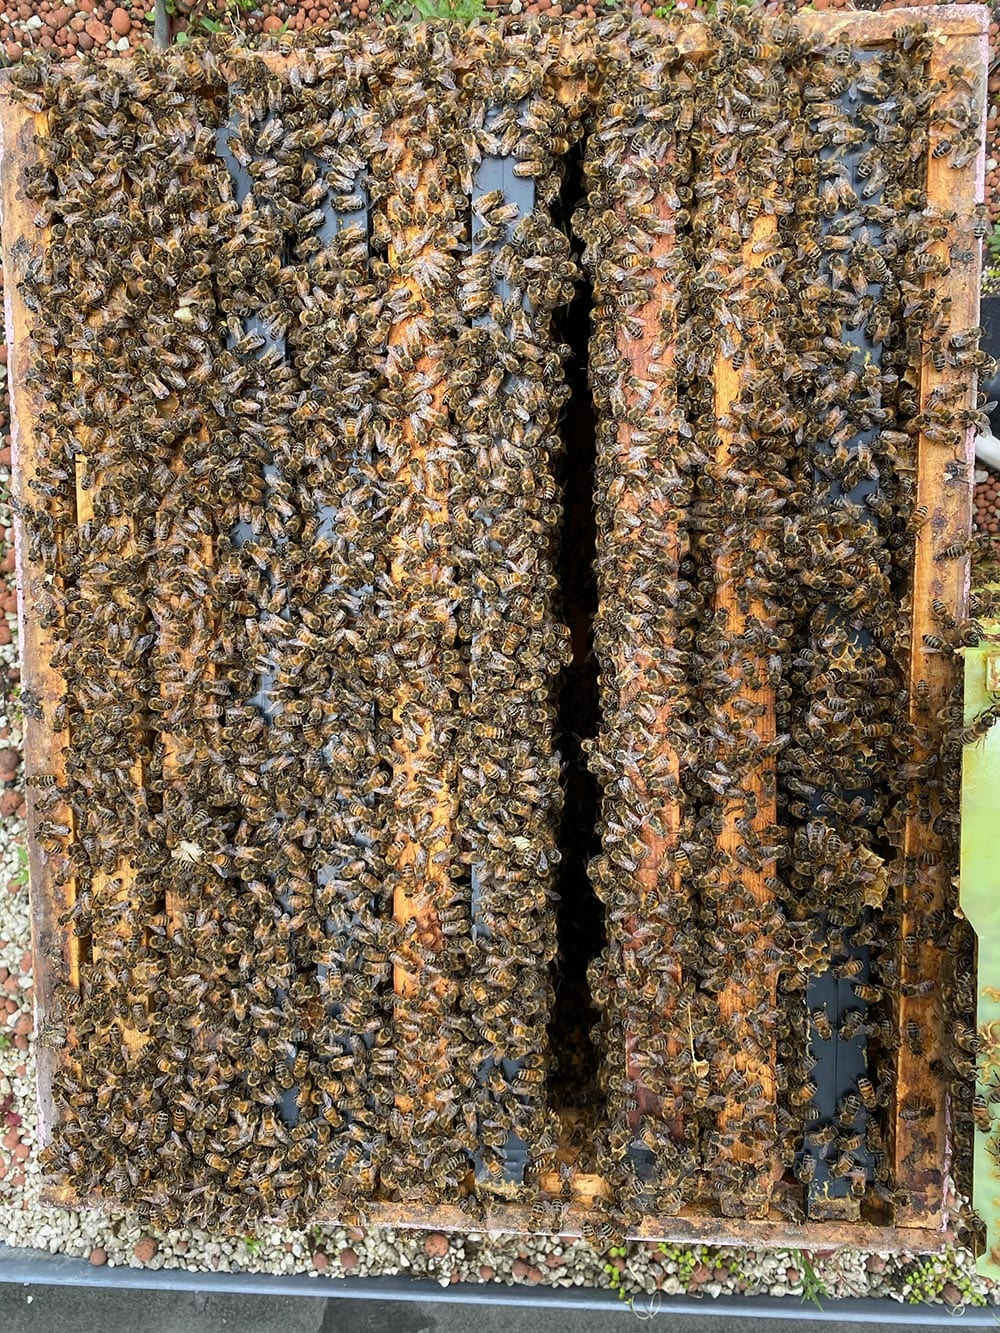 Bees in their hive at Kim Chan Events